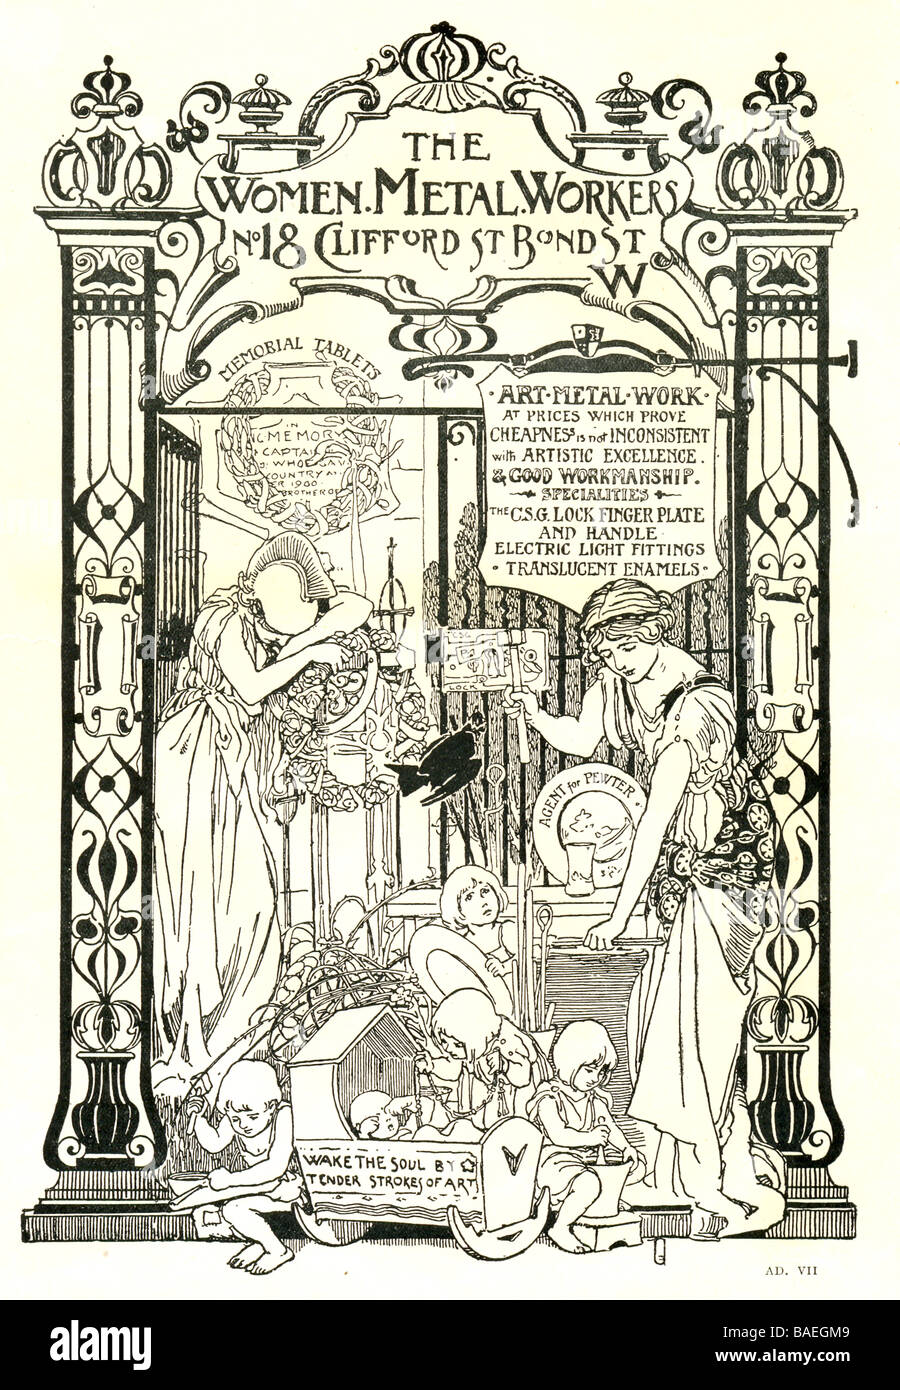 """Advertisement published in """"The Connoisseur"""" for The Women Metal Workers 1901 designed by Walter Crane Stock Photo"""